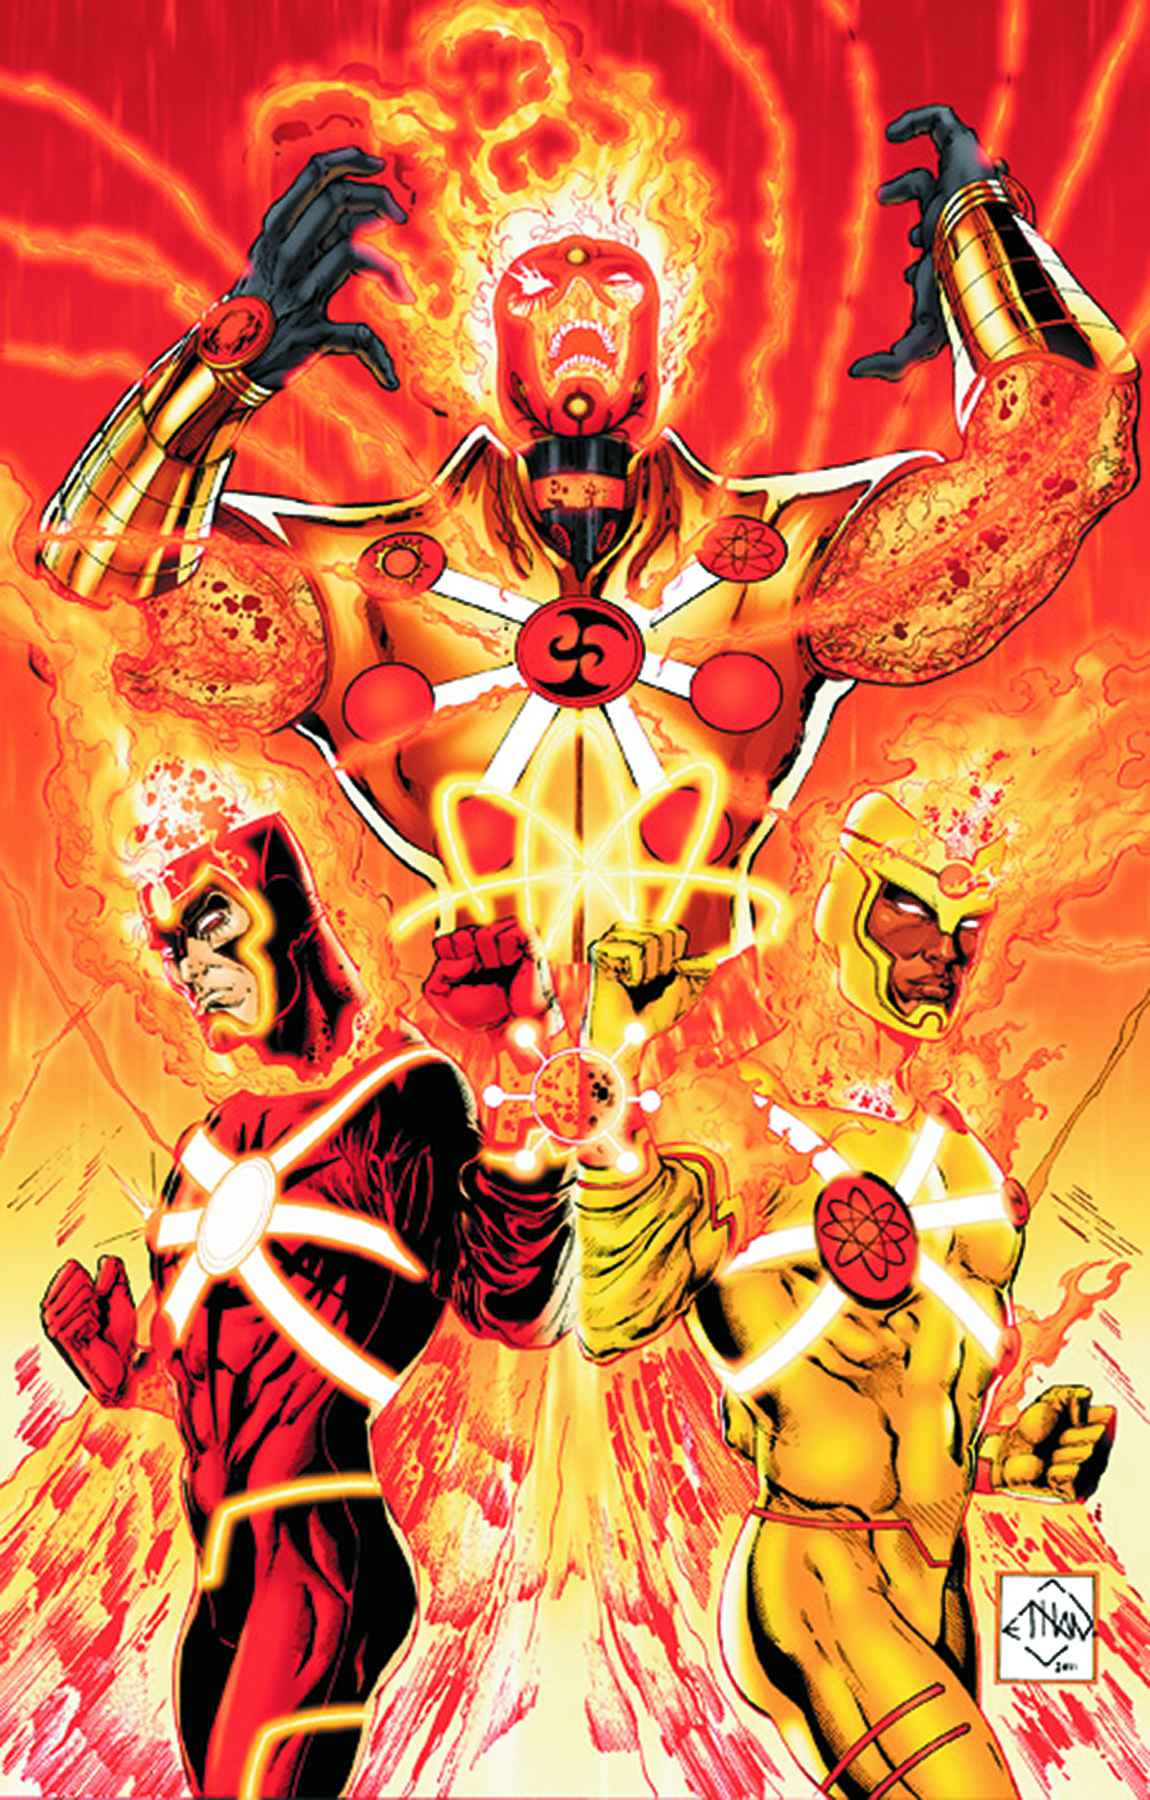 FURY OF FIRESTORM THE NUCLEAR MEN #1